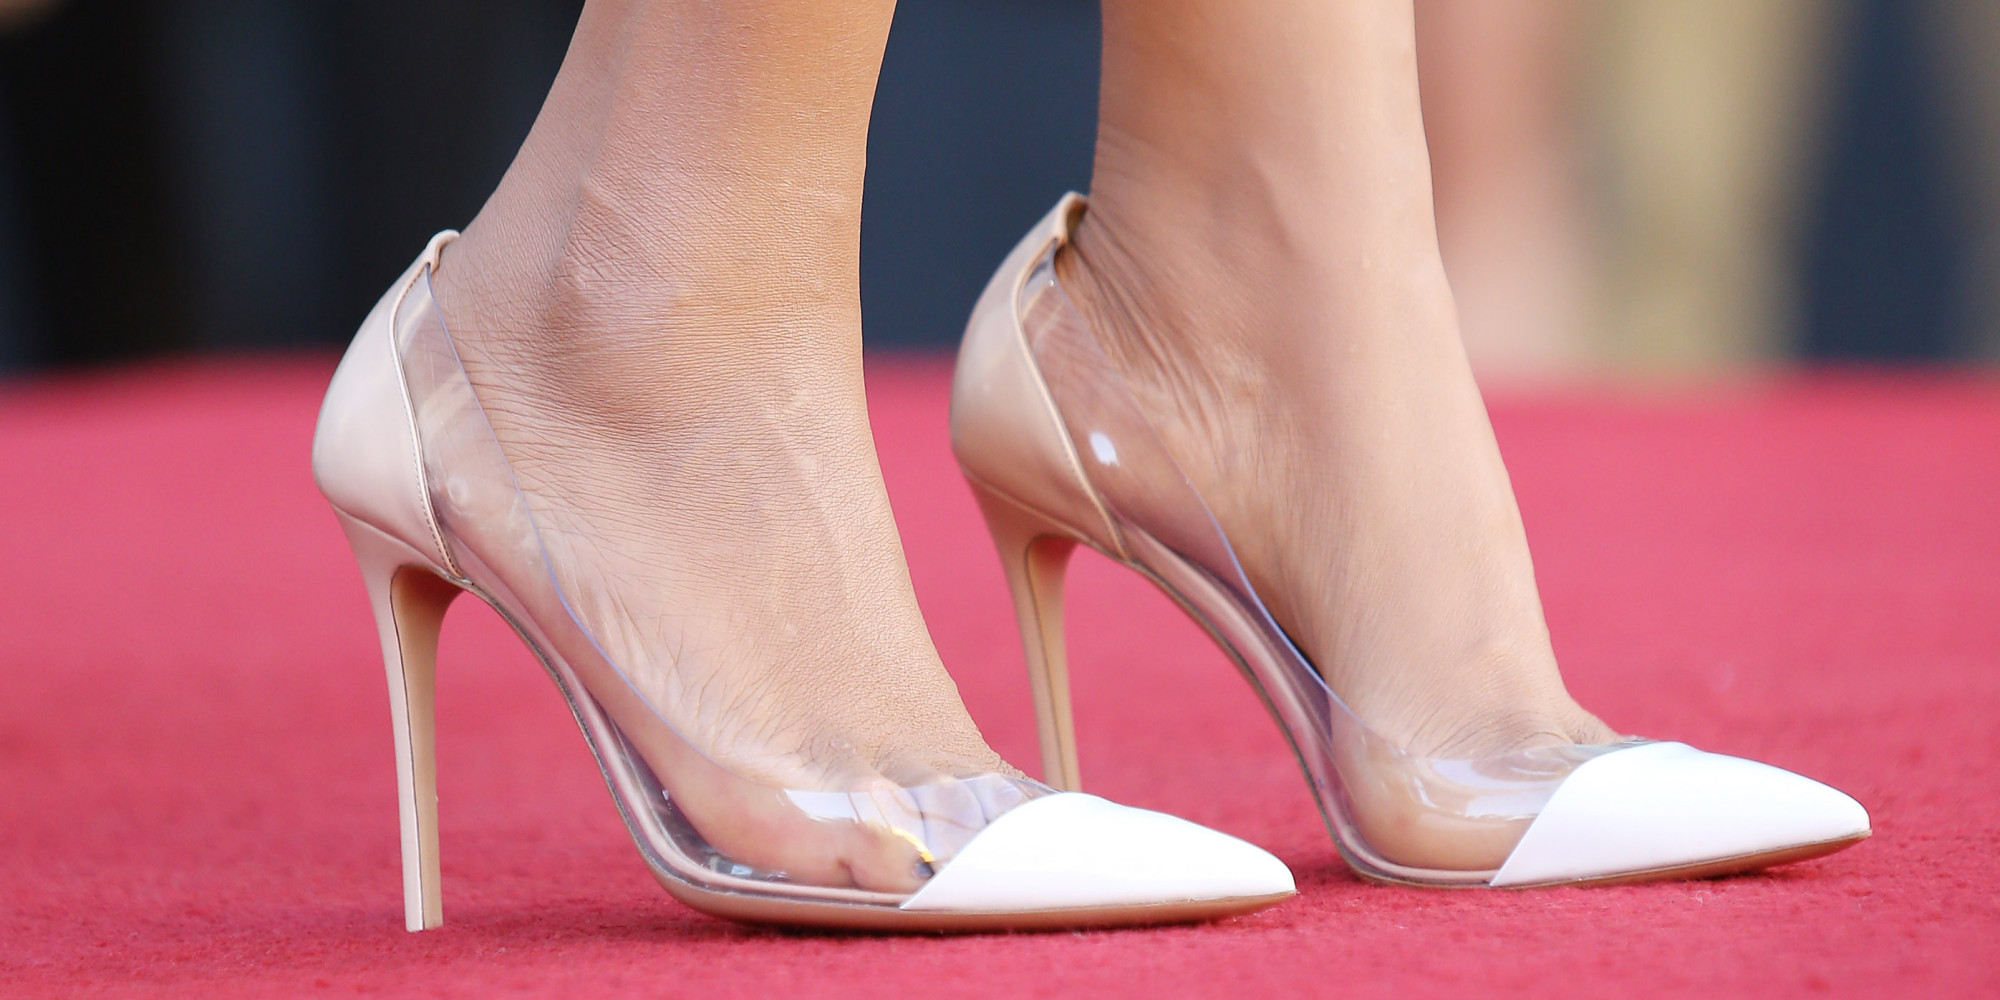 The 6 Types of Shoes Every Working Woman Should Own01